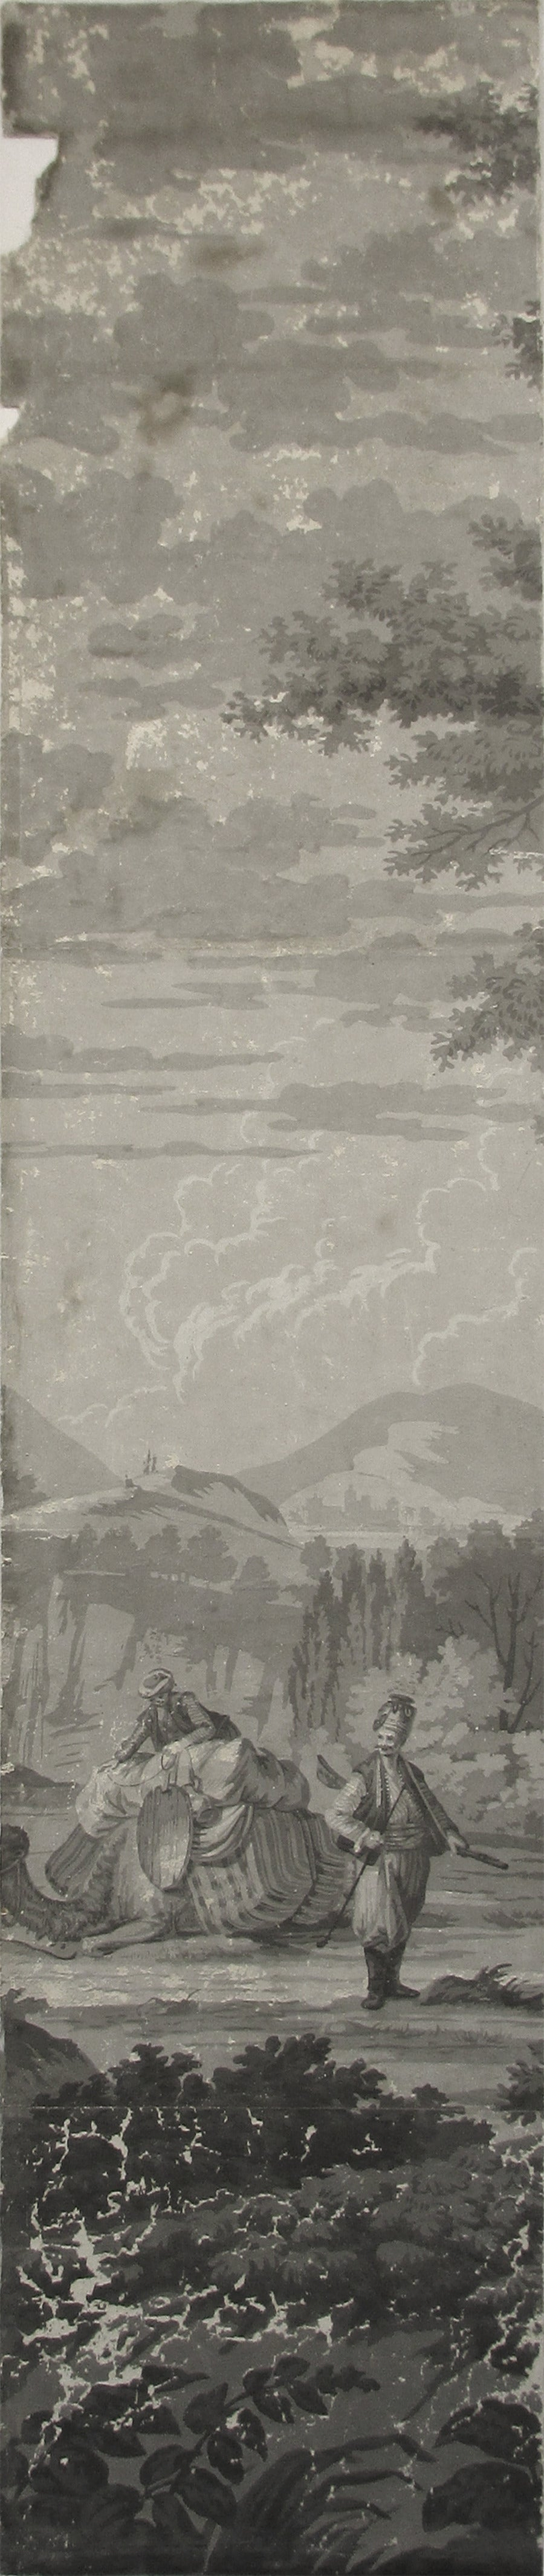 21 Wallpaper Panels, by Joseph Dufour Et Cie, After Comte de Choiseul-Gouffier 2